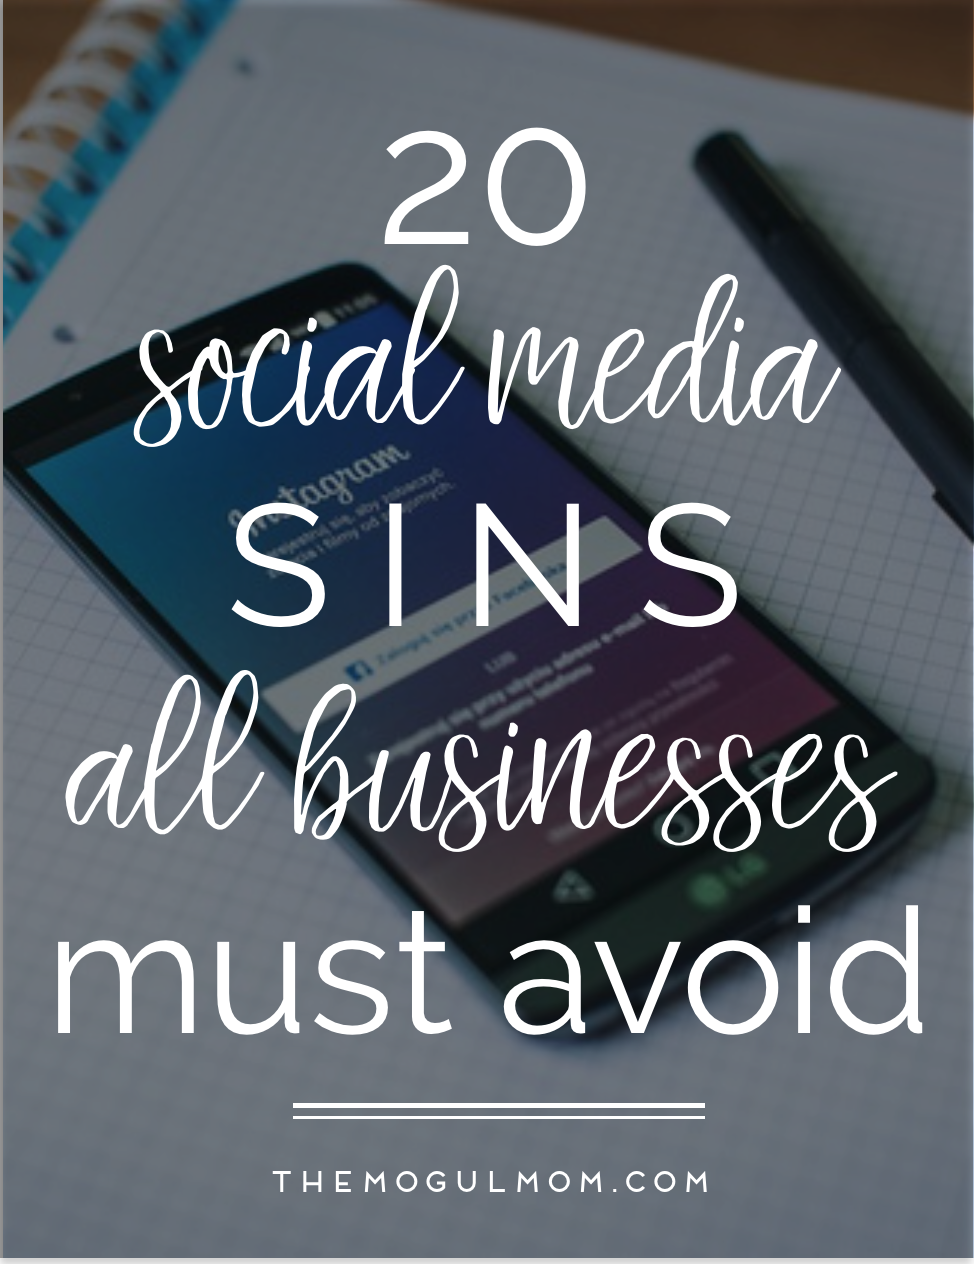 20 Social Media Sins For Businesses To Avoid